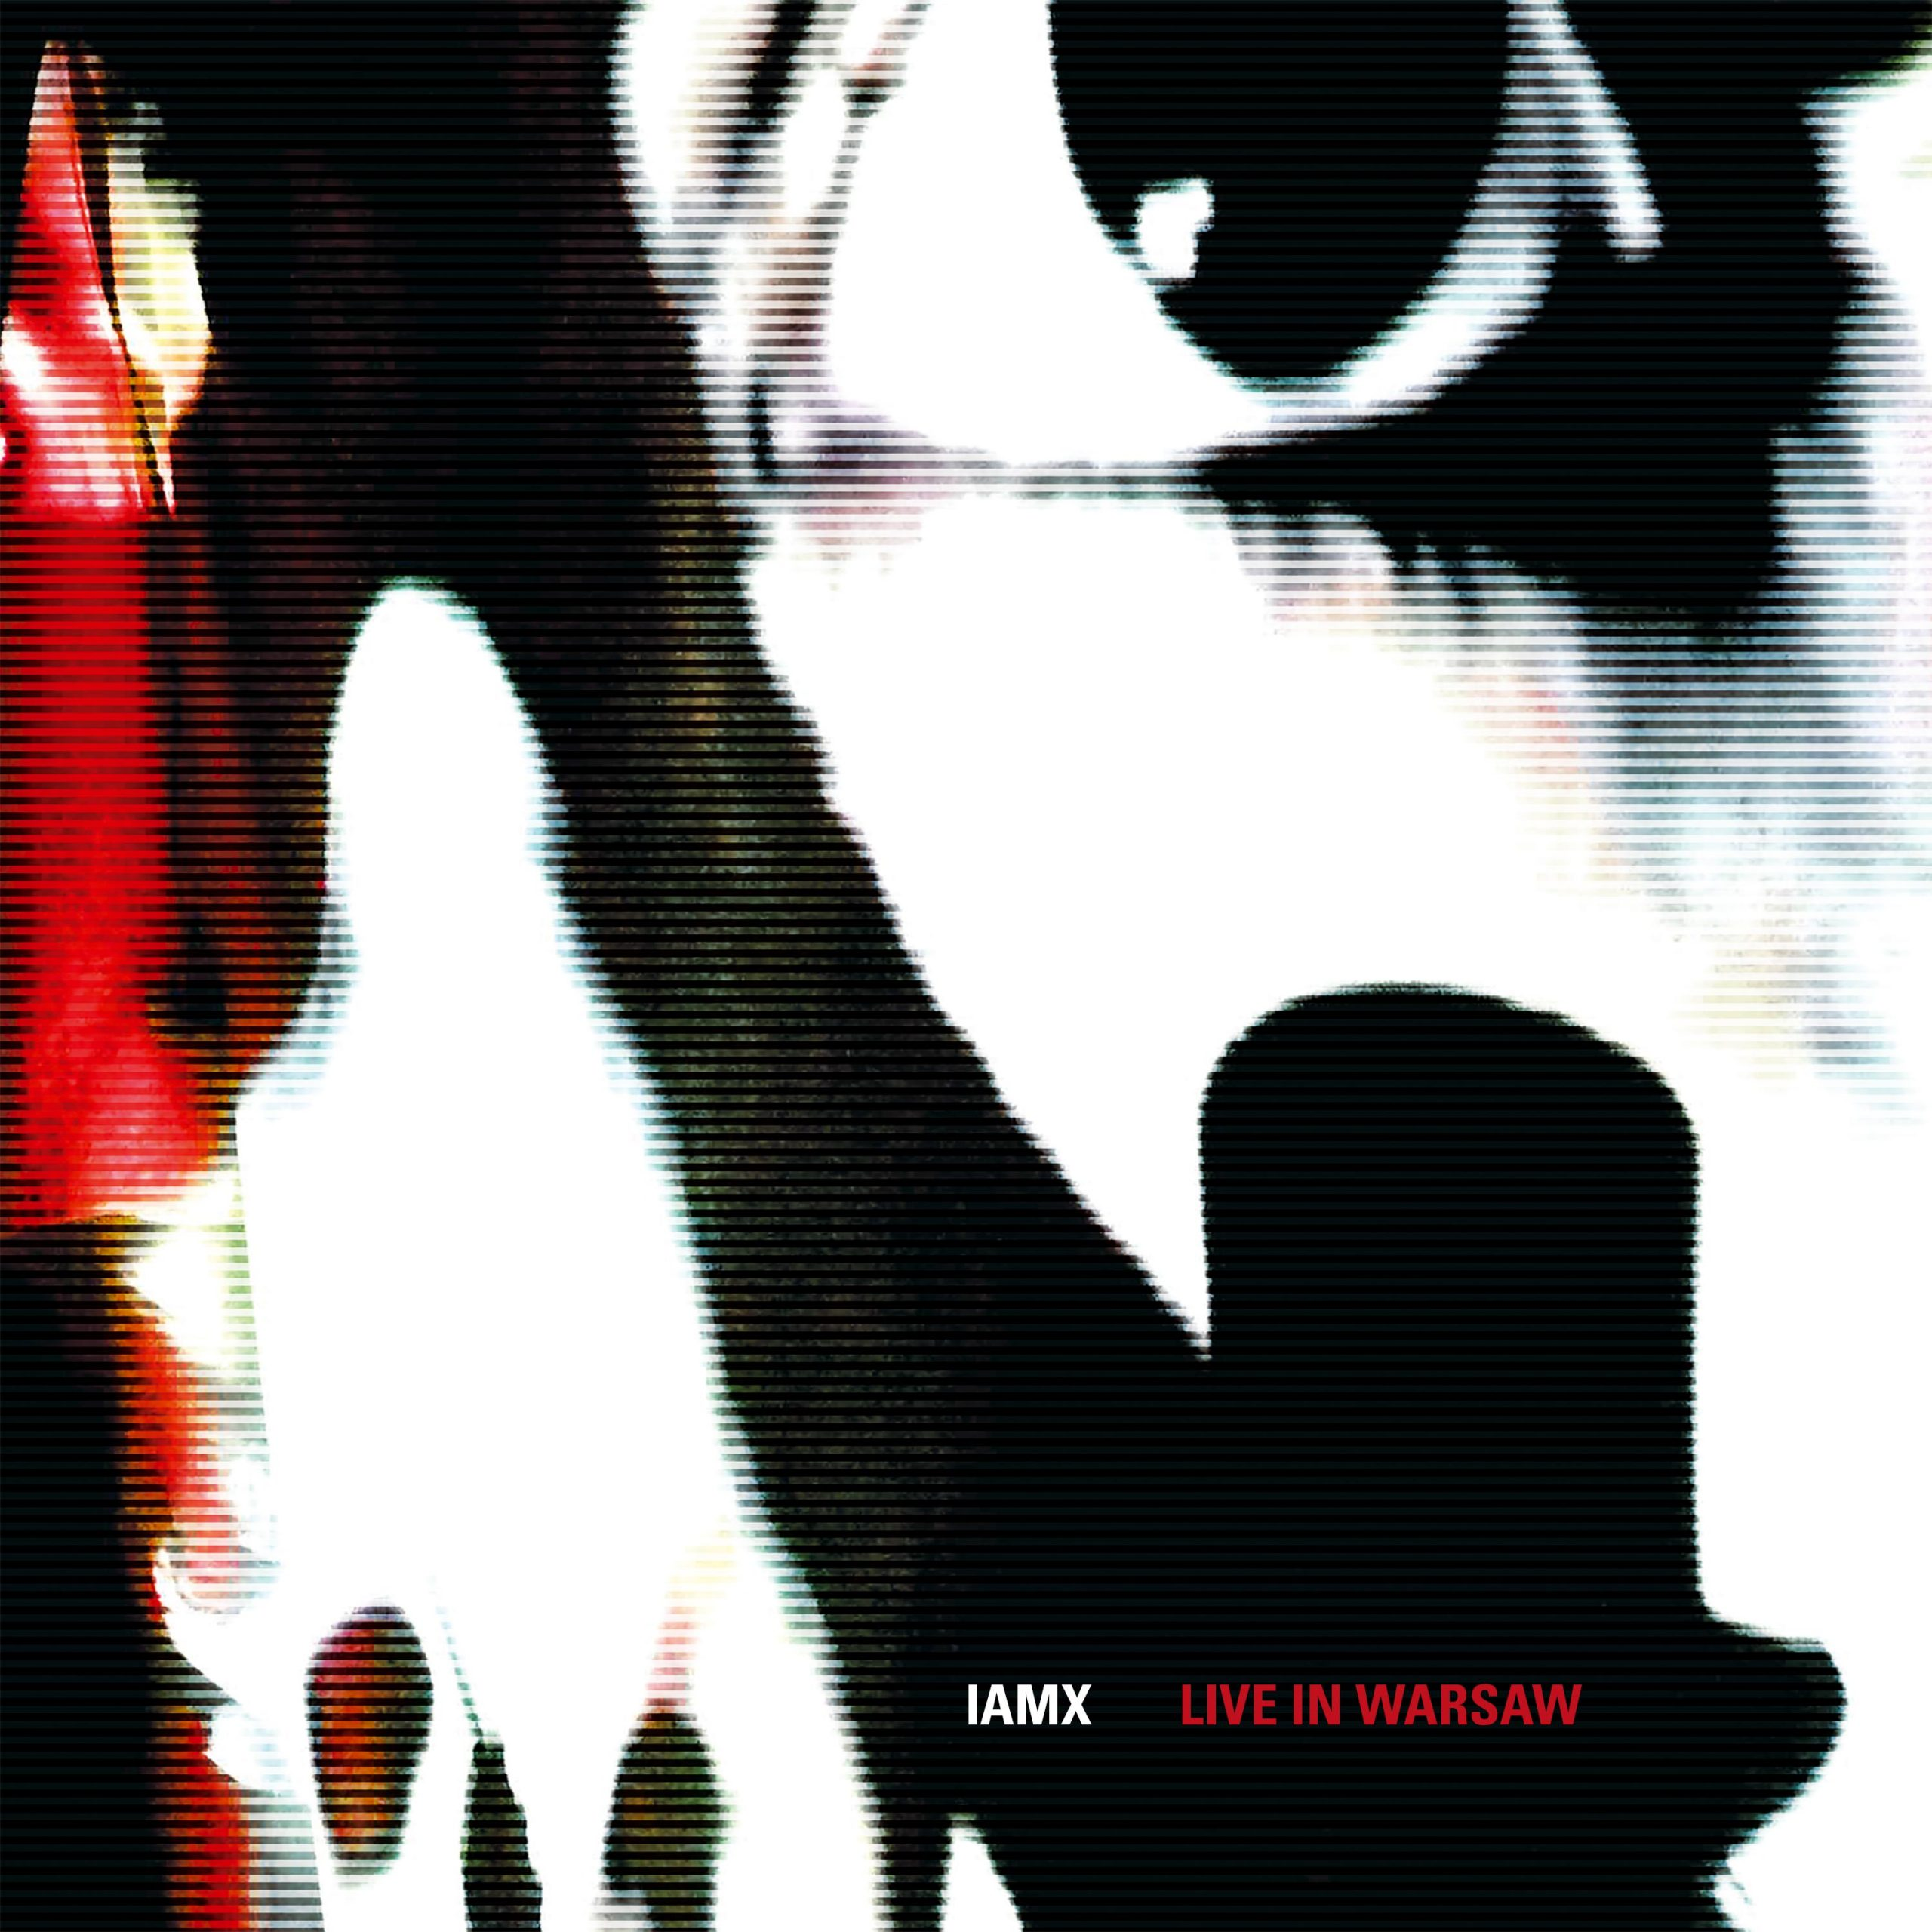 iamx-live-in-warsaw-cover